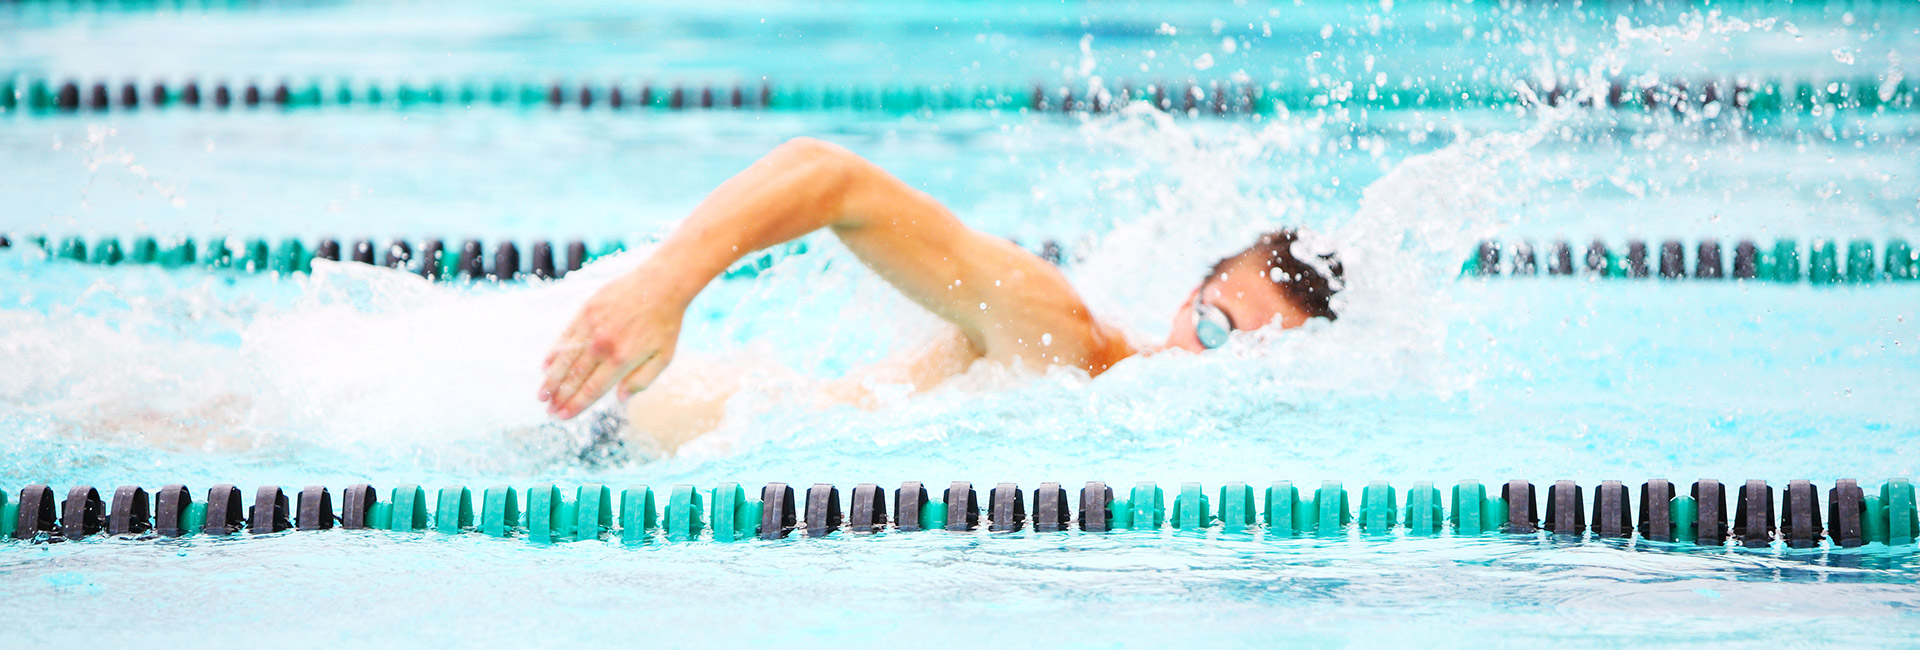 Swimmers-Stretching-Guide---Therapeutic-Associates-Physical-Therapy